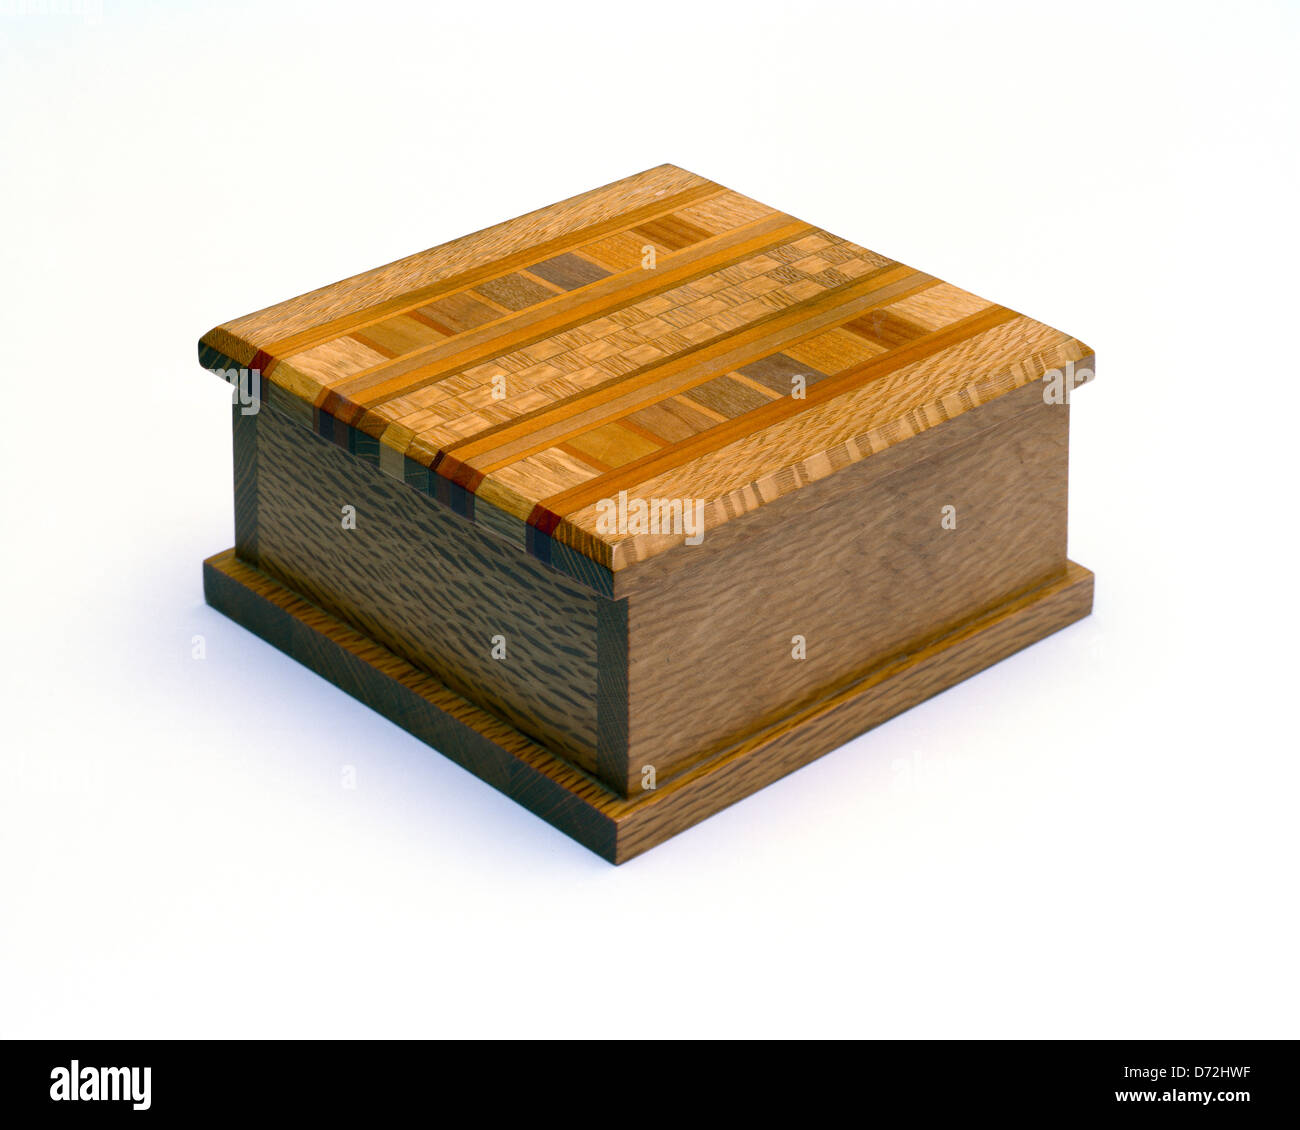 Small ornamental box crafted from native New Zealand timbers - Stock Image